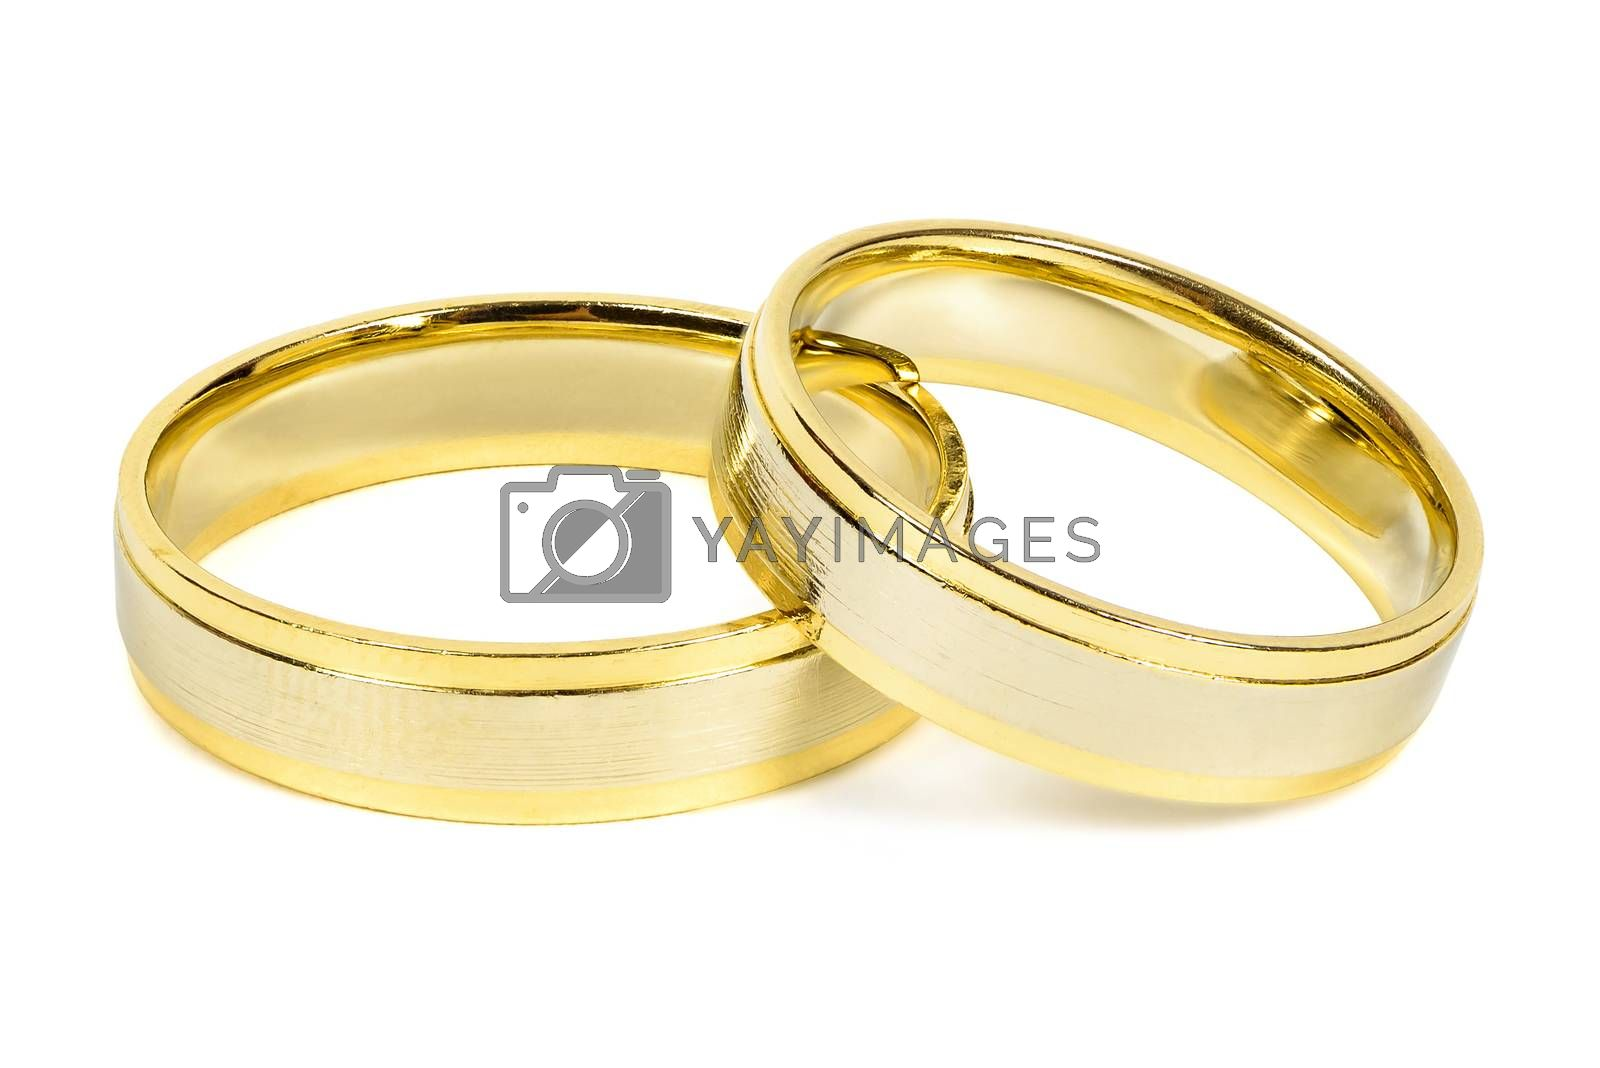 Royalty free image of Wedding rings on white background by mkos83